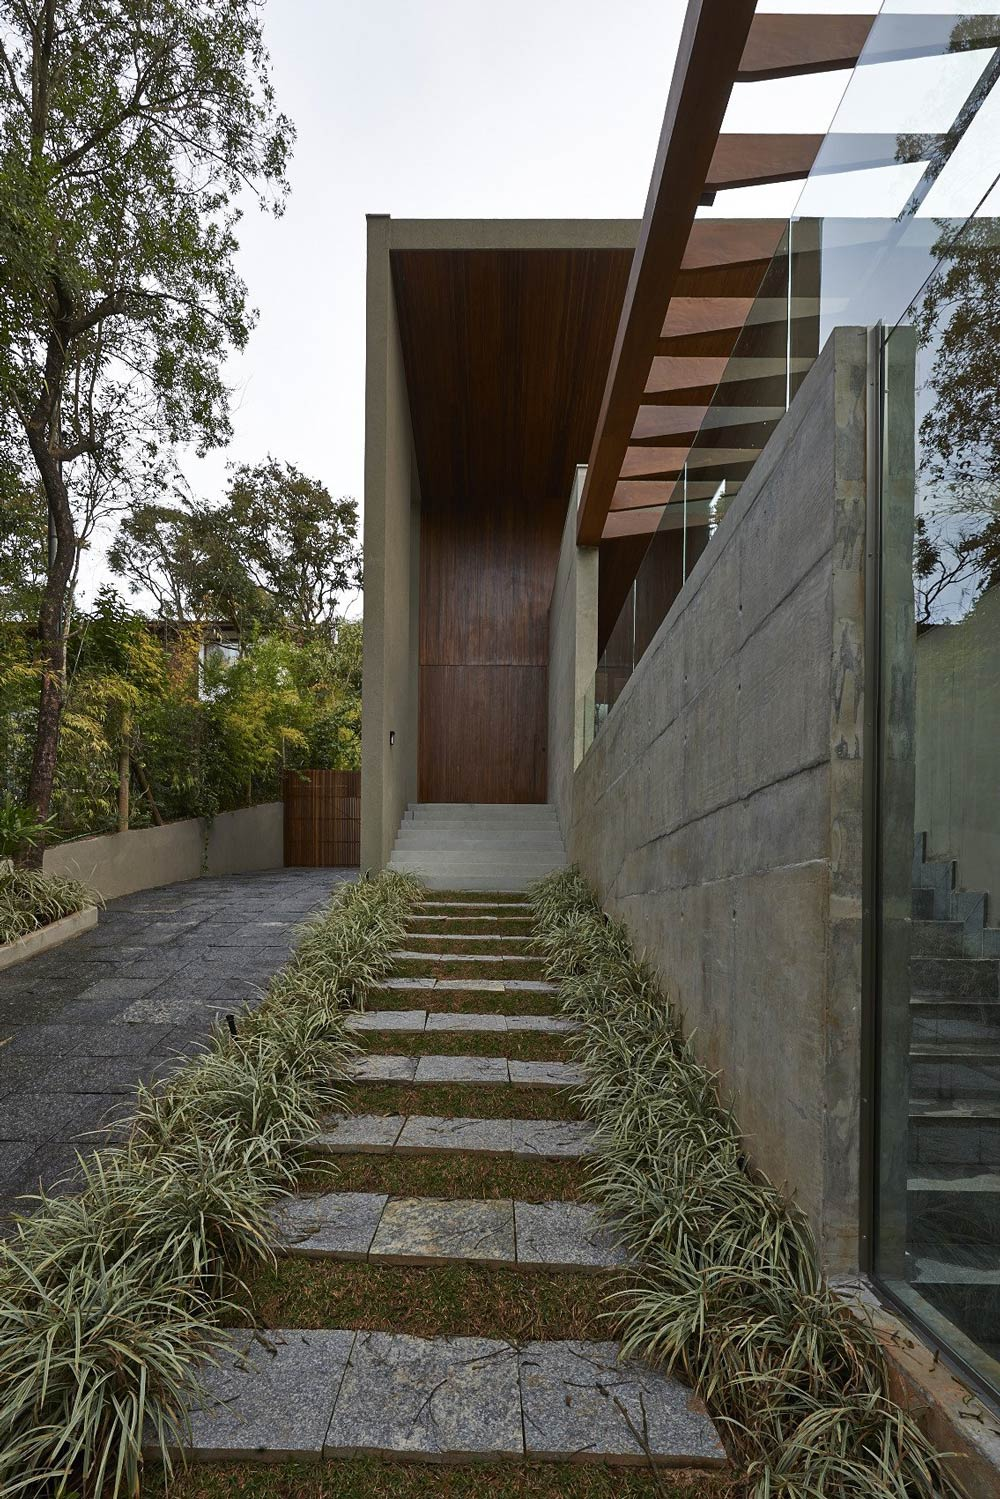 Exposed Concrete, Glass Balustrading, Steps, Contemporary Home in Nova Lima, Brazil